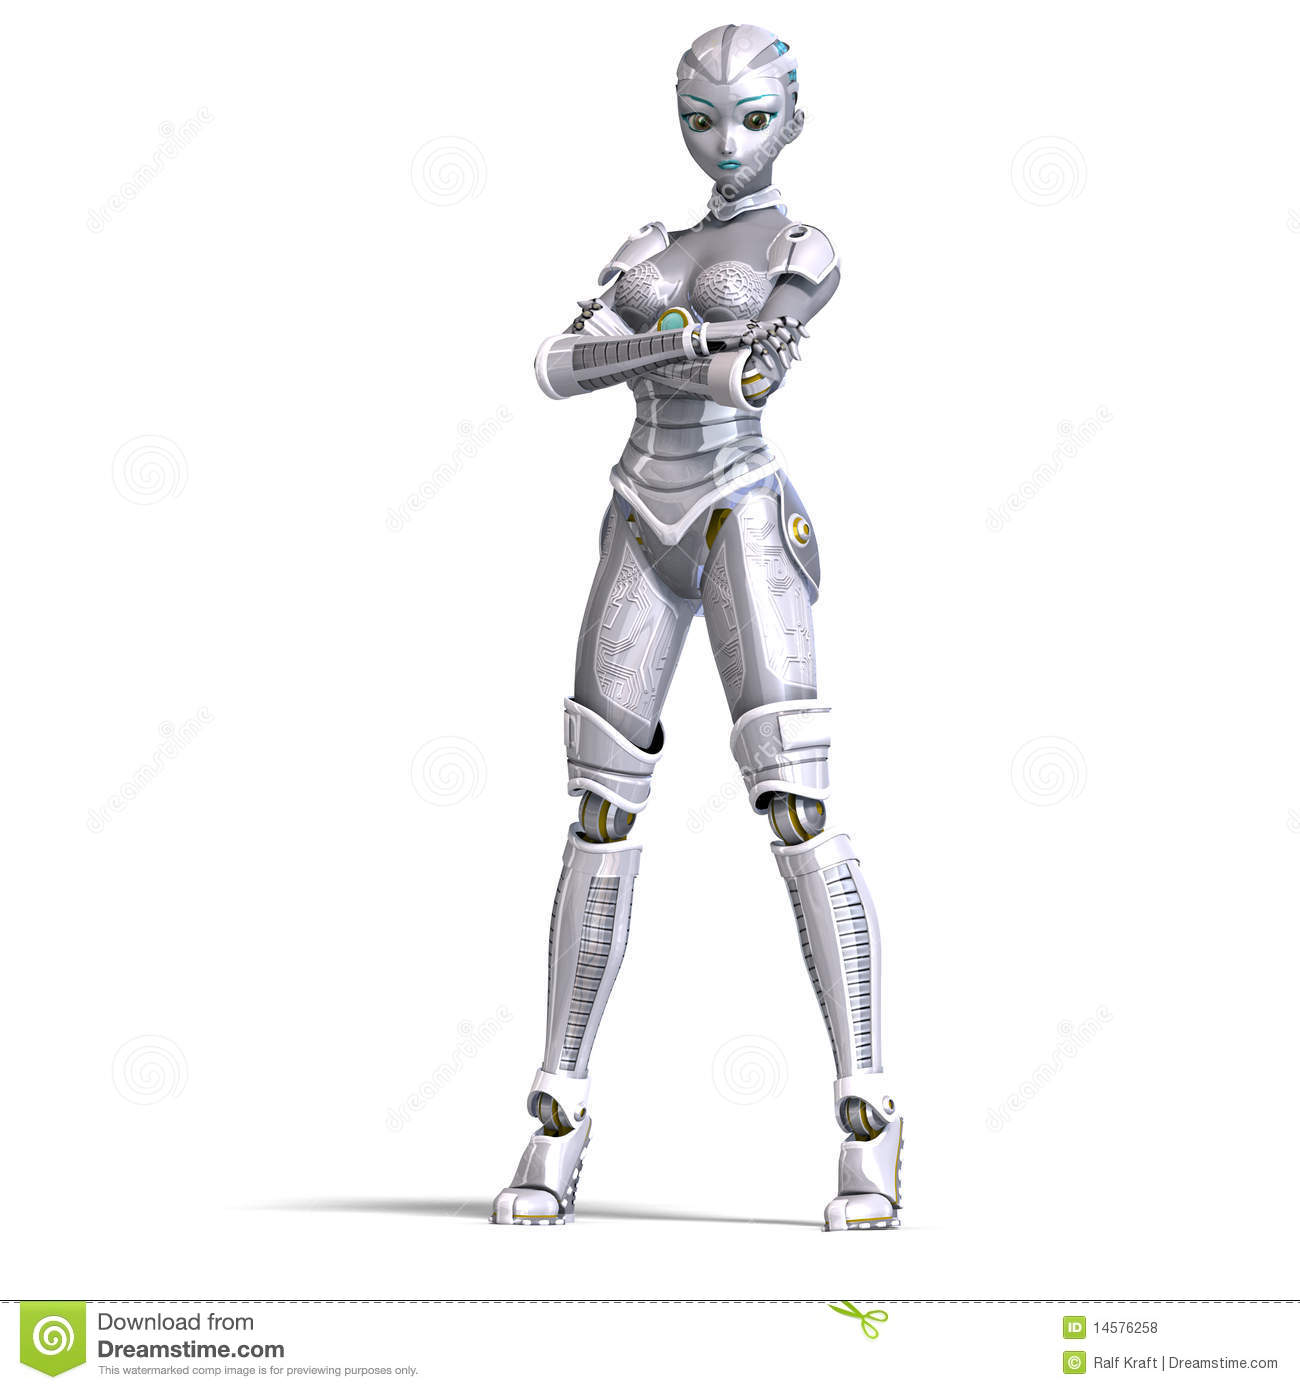 Female Metallic Robot 3d Rendering With Royalty Free